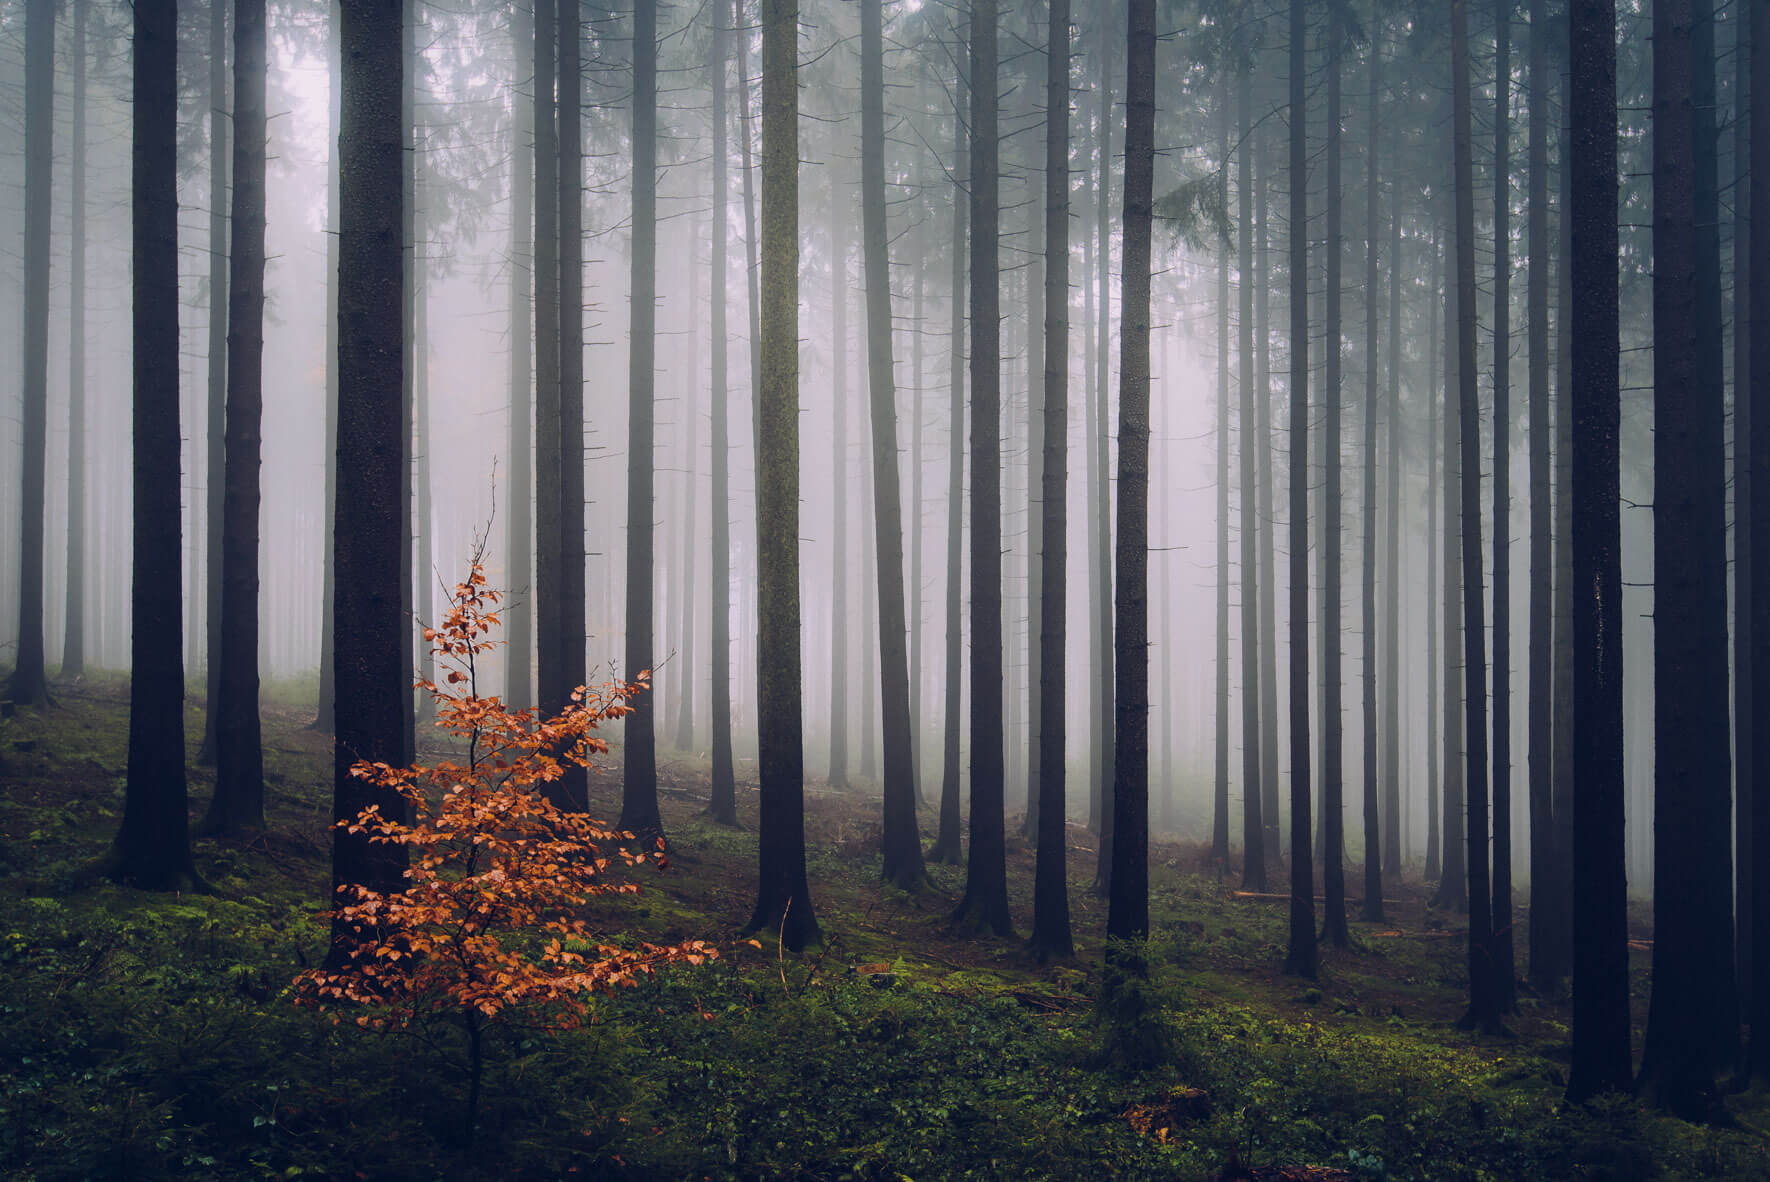 Nordic landscape photography by visual artist and photographer Jan Erik Waider